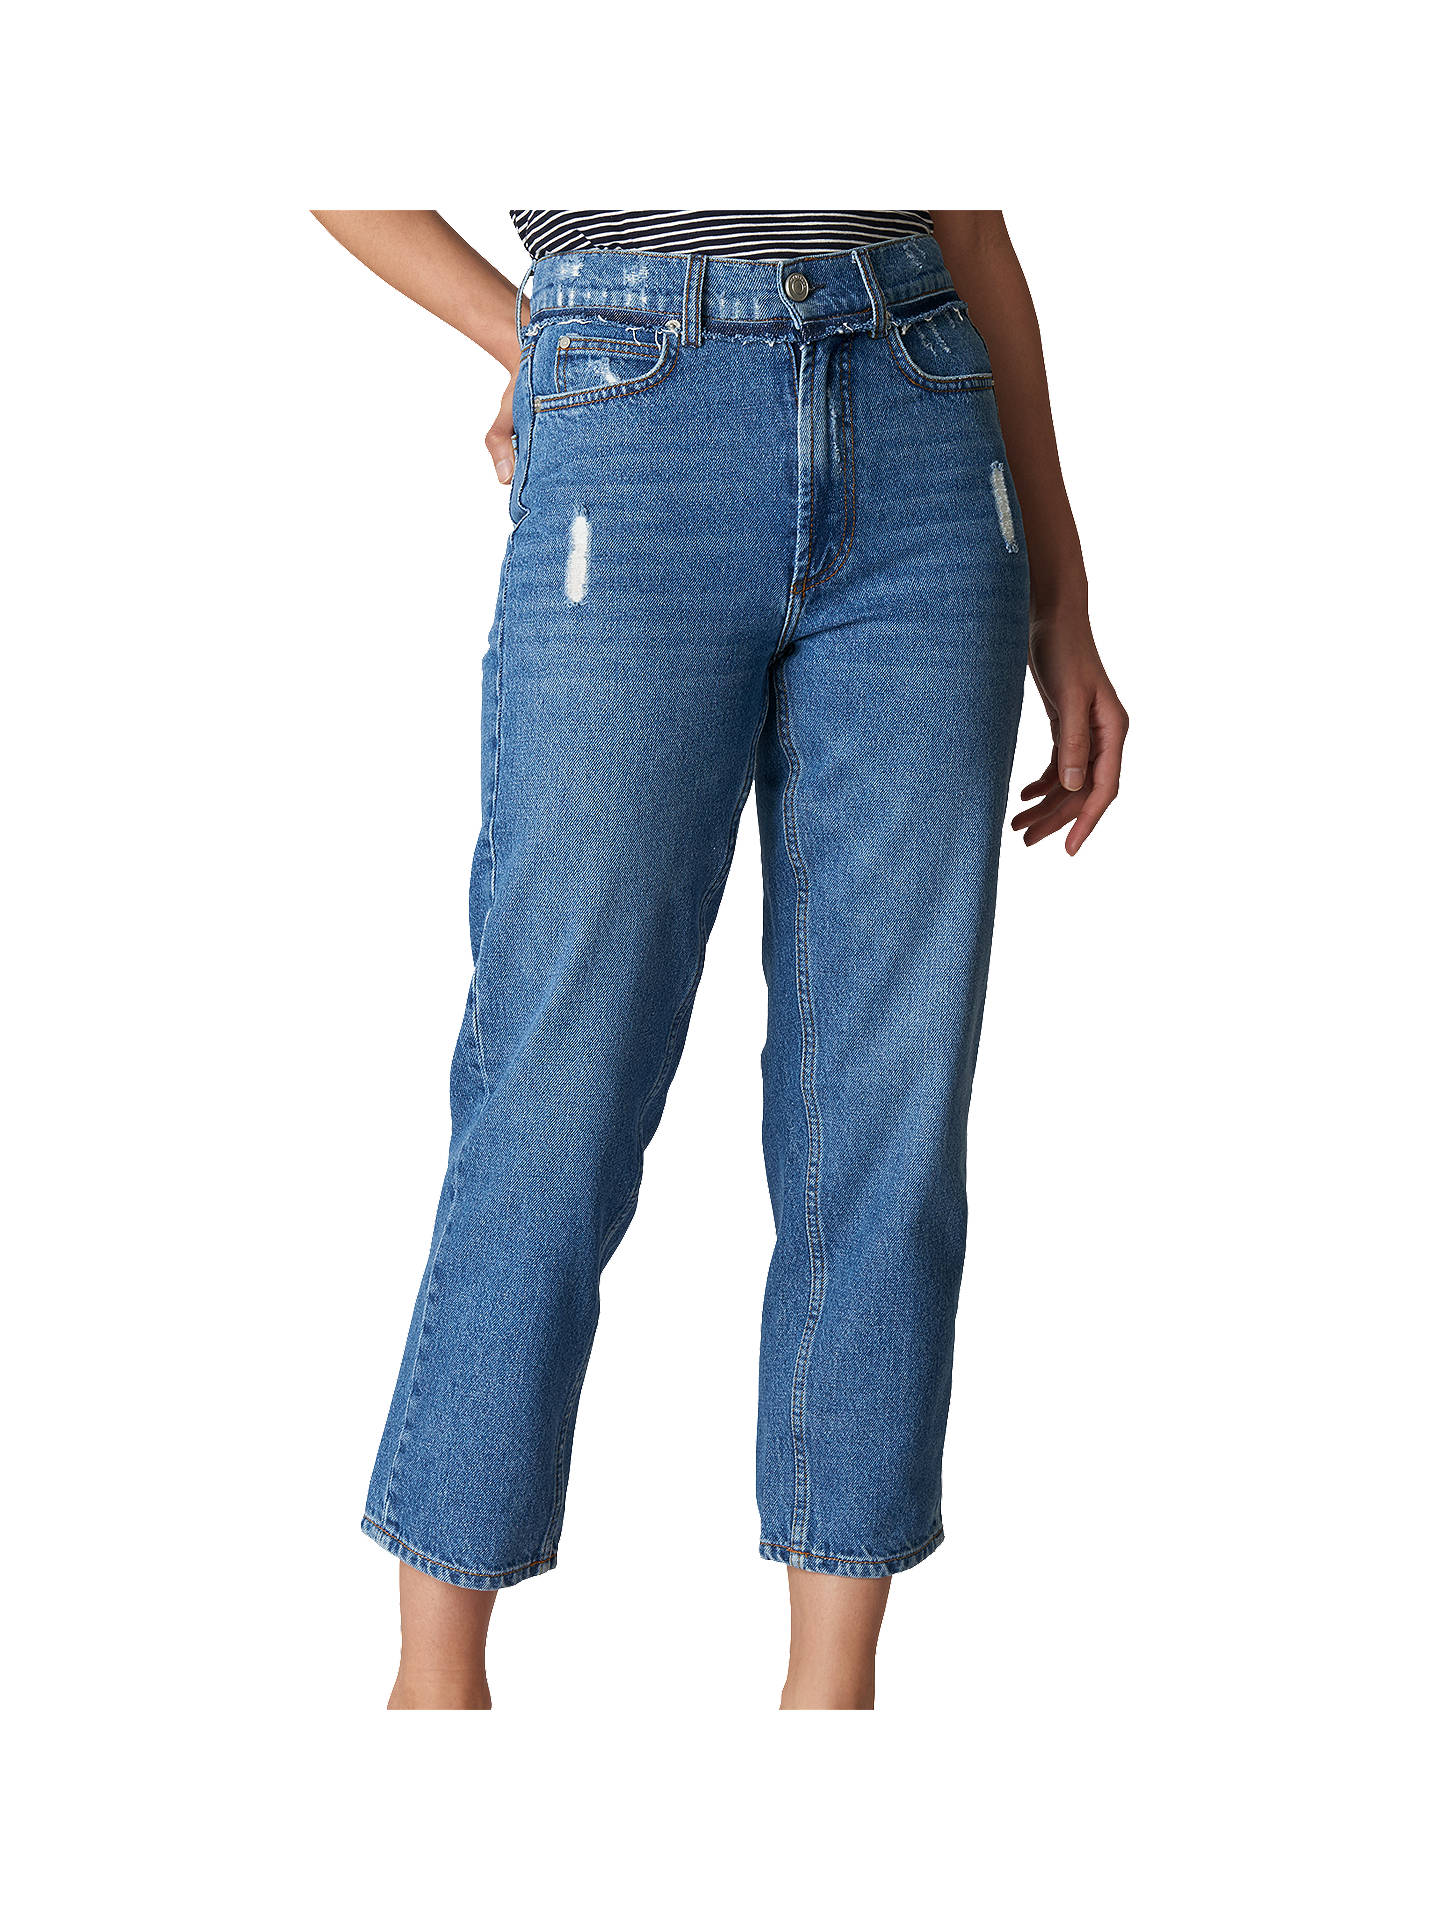 Joie Size 27 Womens Boot Cut Jeans 100% Cotton Be Novel In Design Women's Clothing